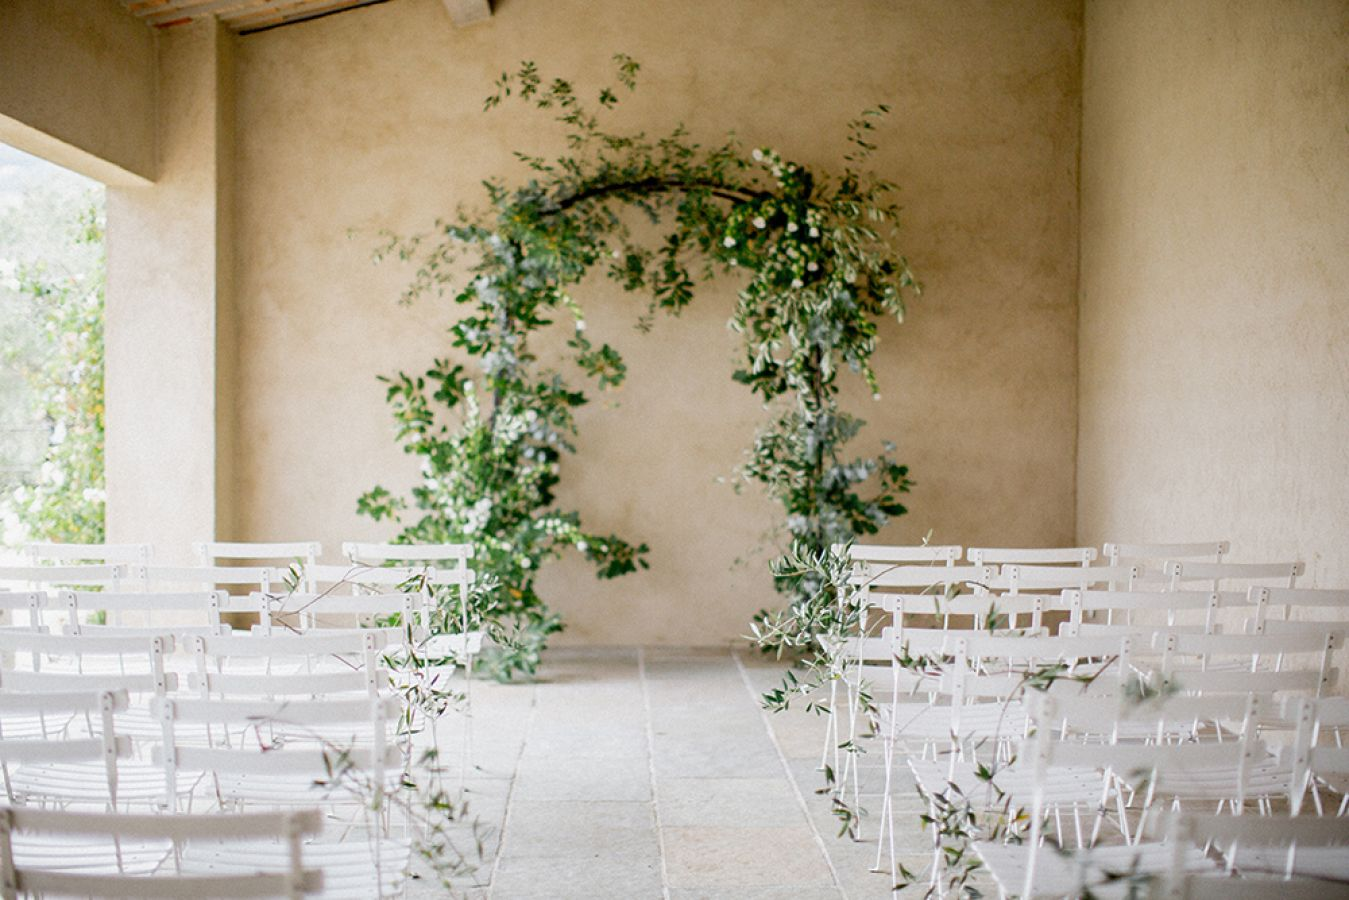 For those that feel a little rain will ruin your big day, allow us to showcase the prettiest villa wedding that just so happened to be a backup plan. For it was a flawless 'Plan B' that quickly had this couple